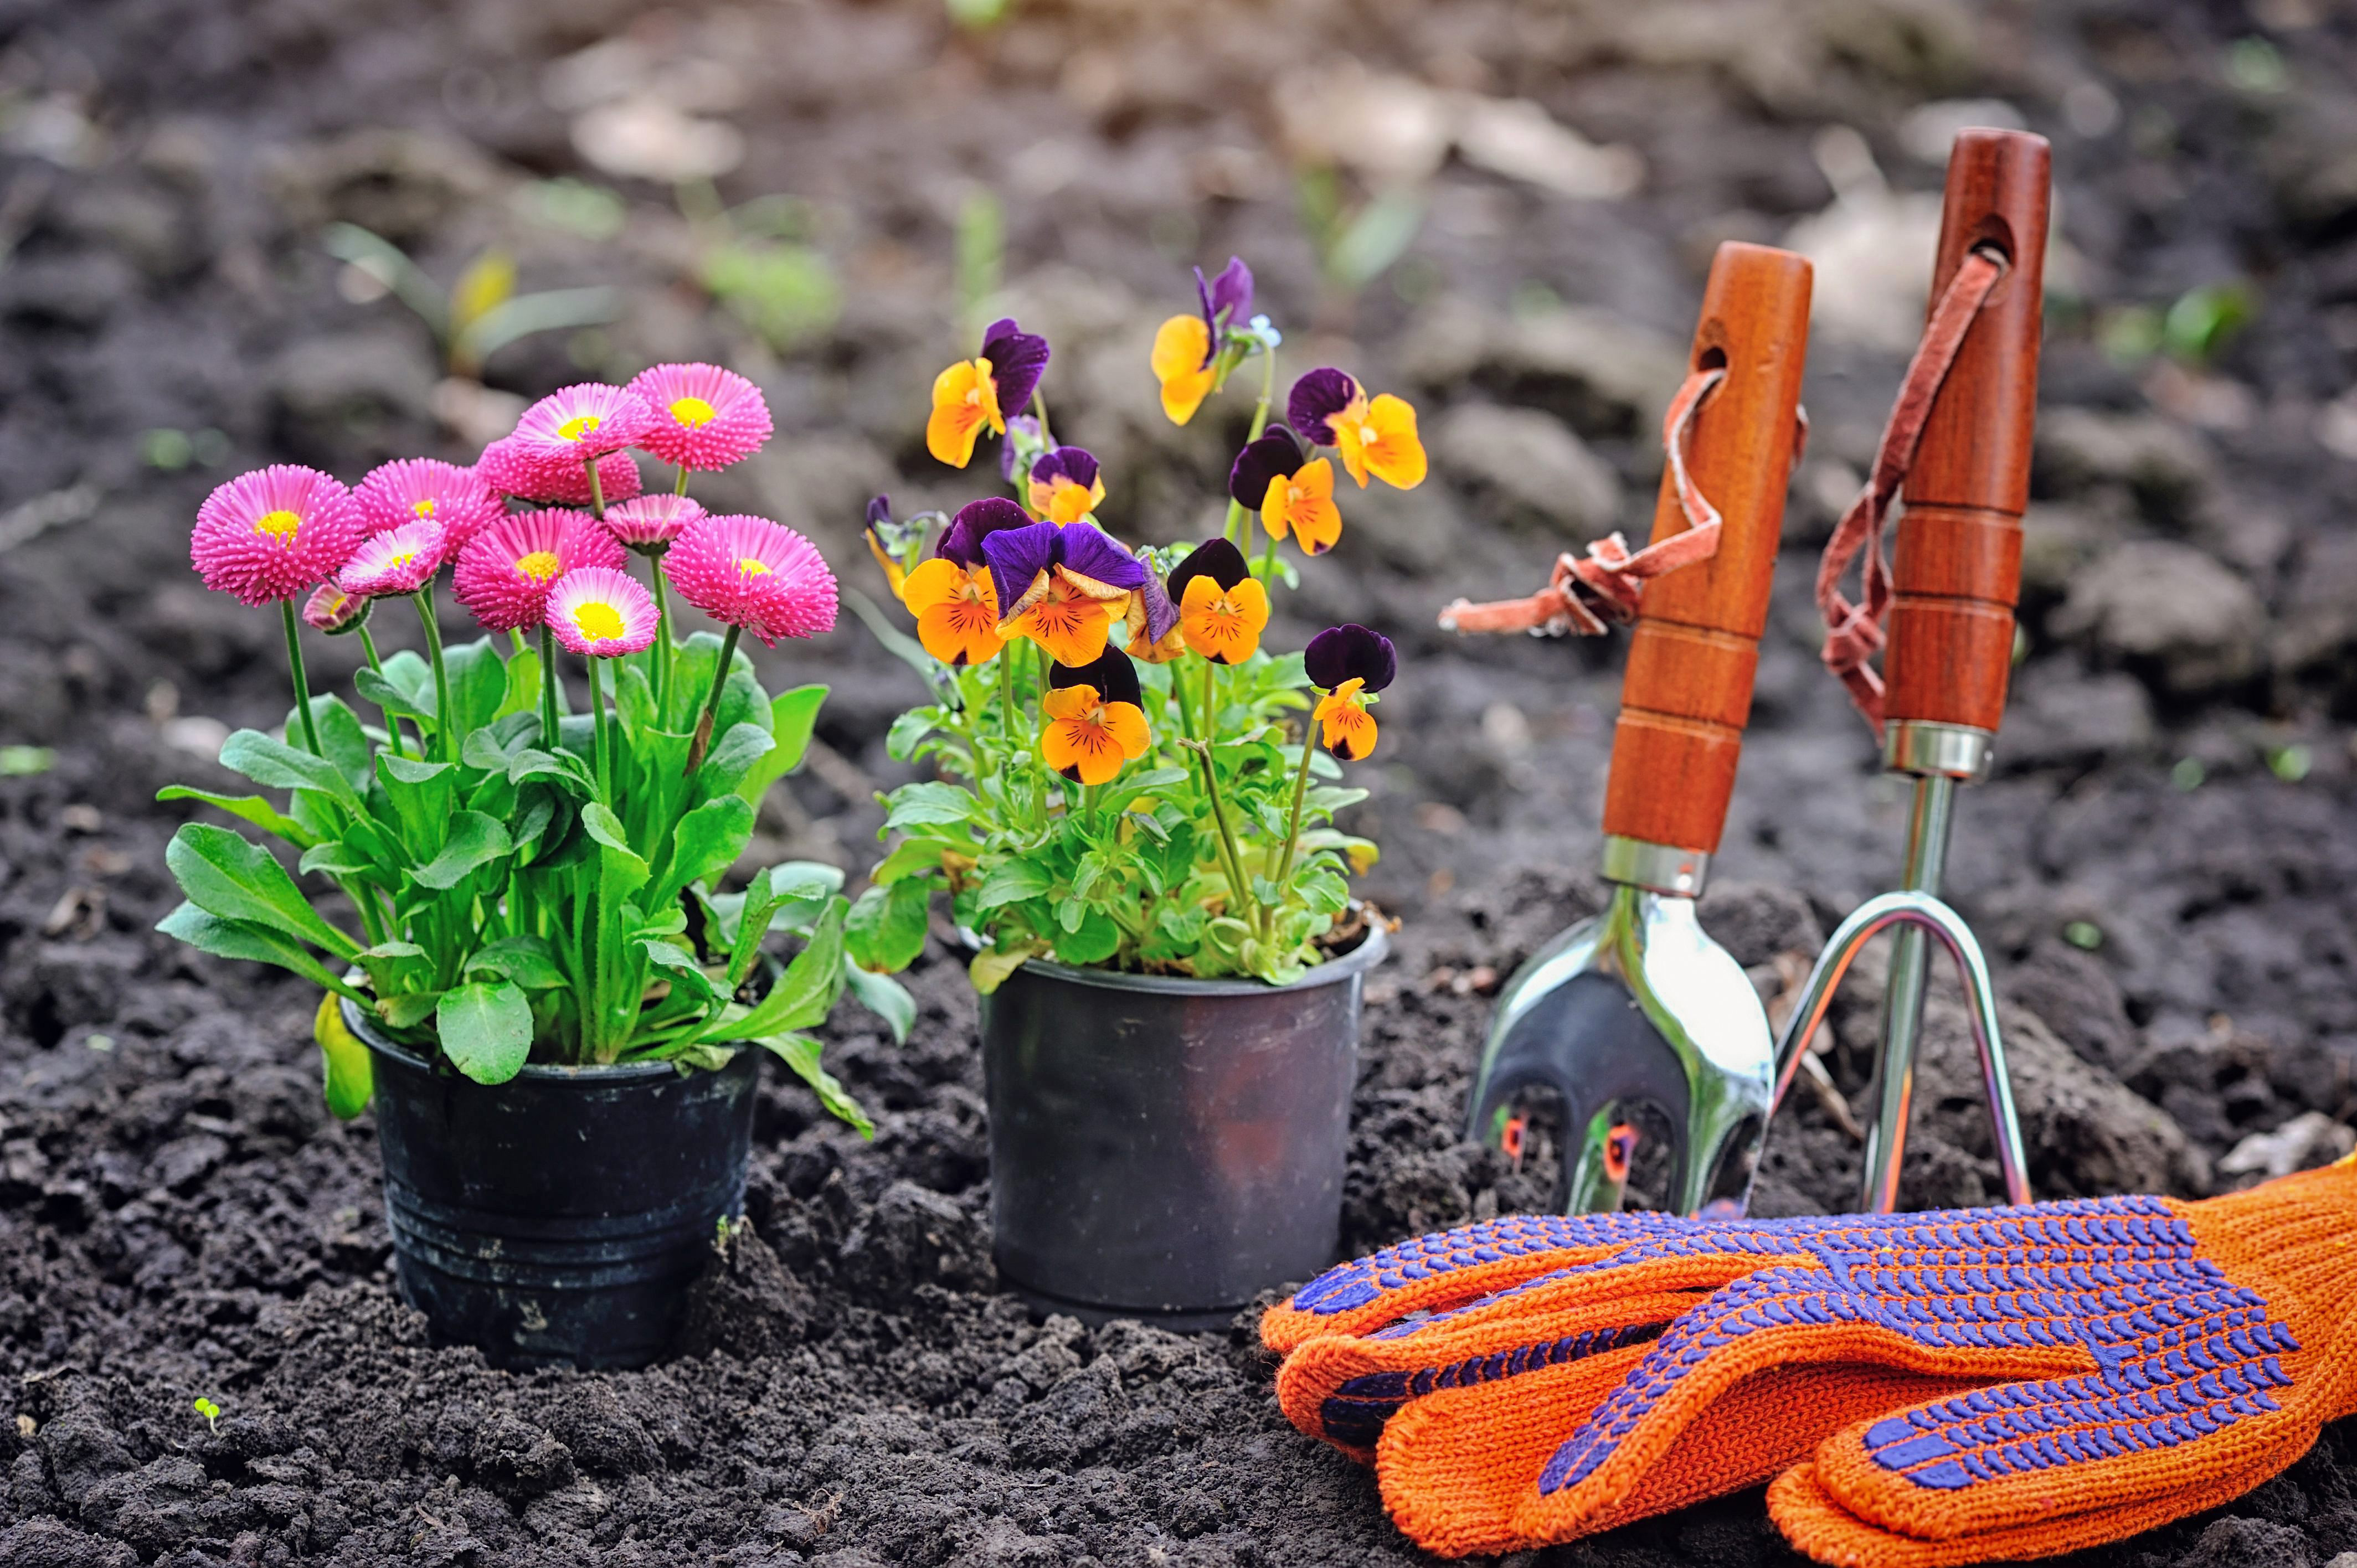 gardening-tools-and-spring-flowers-in-th